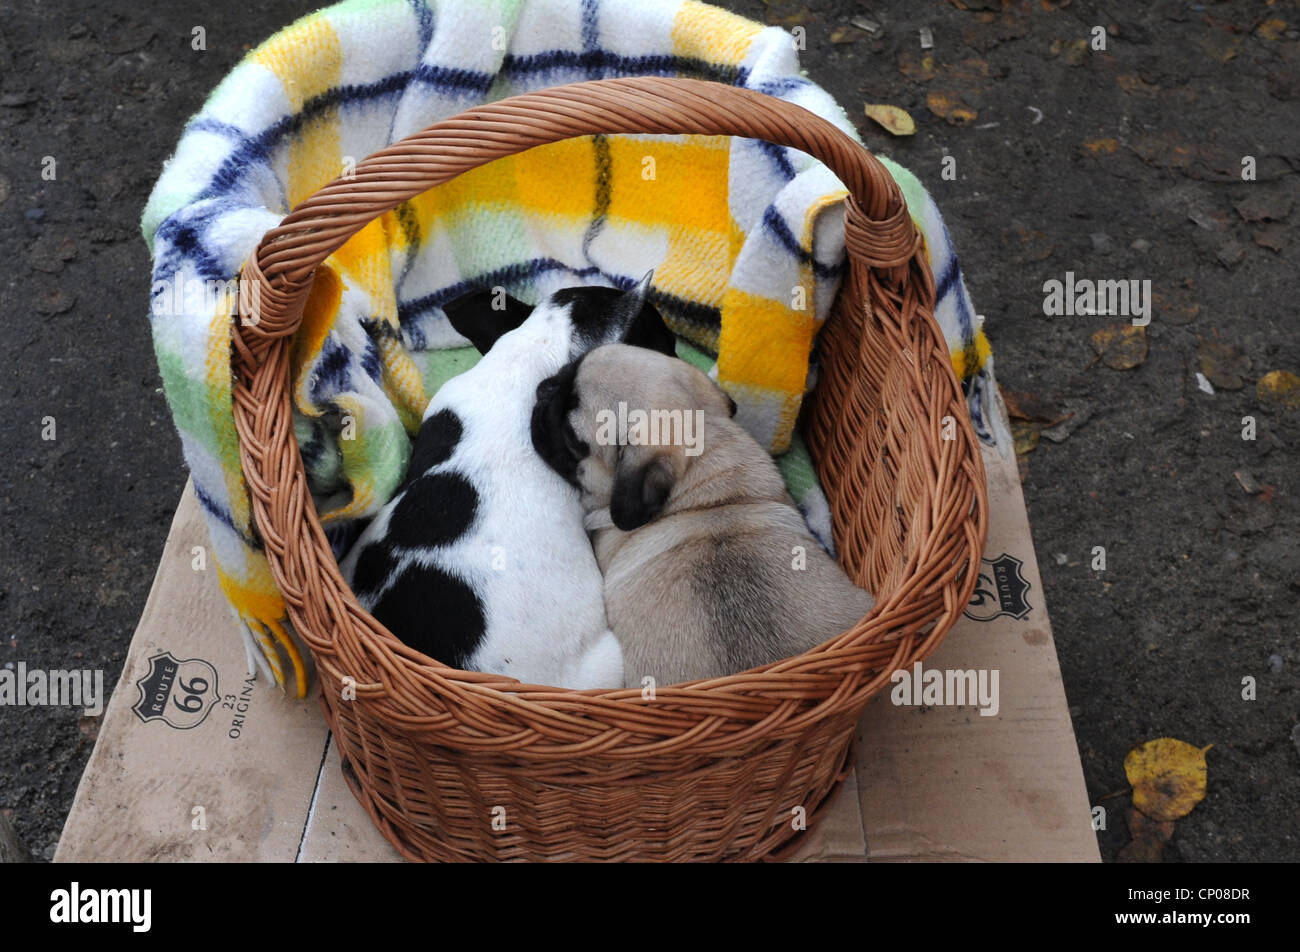 domestic dog (Canis lupus f. familiaris), trade in puppies at polish market,  , - Stock Image